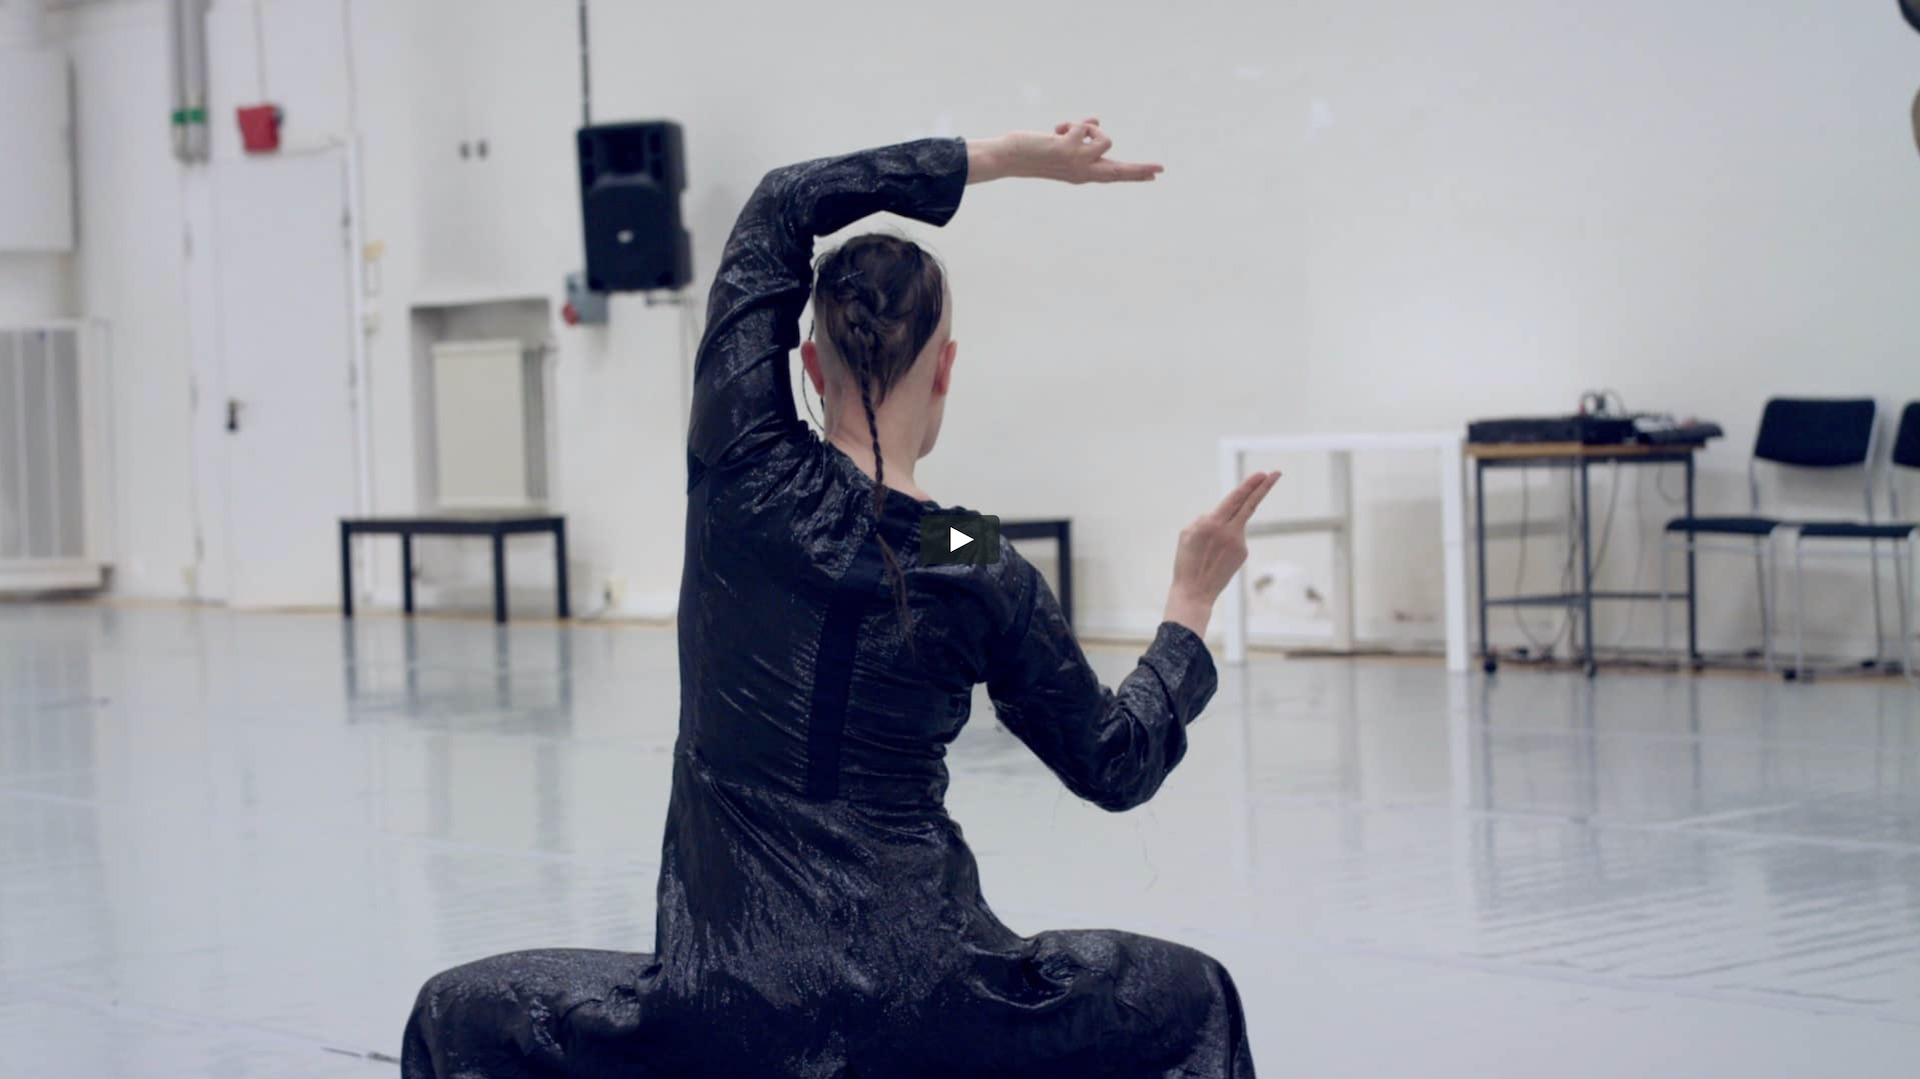 Follow Virpi Pahkinen in her work as a choreographer and dancer.